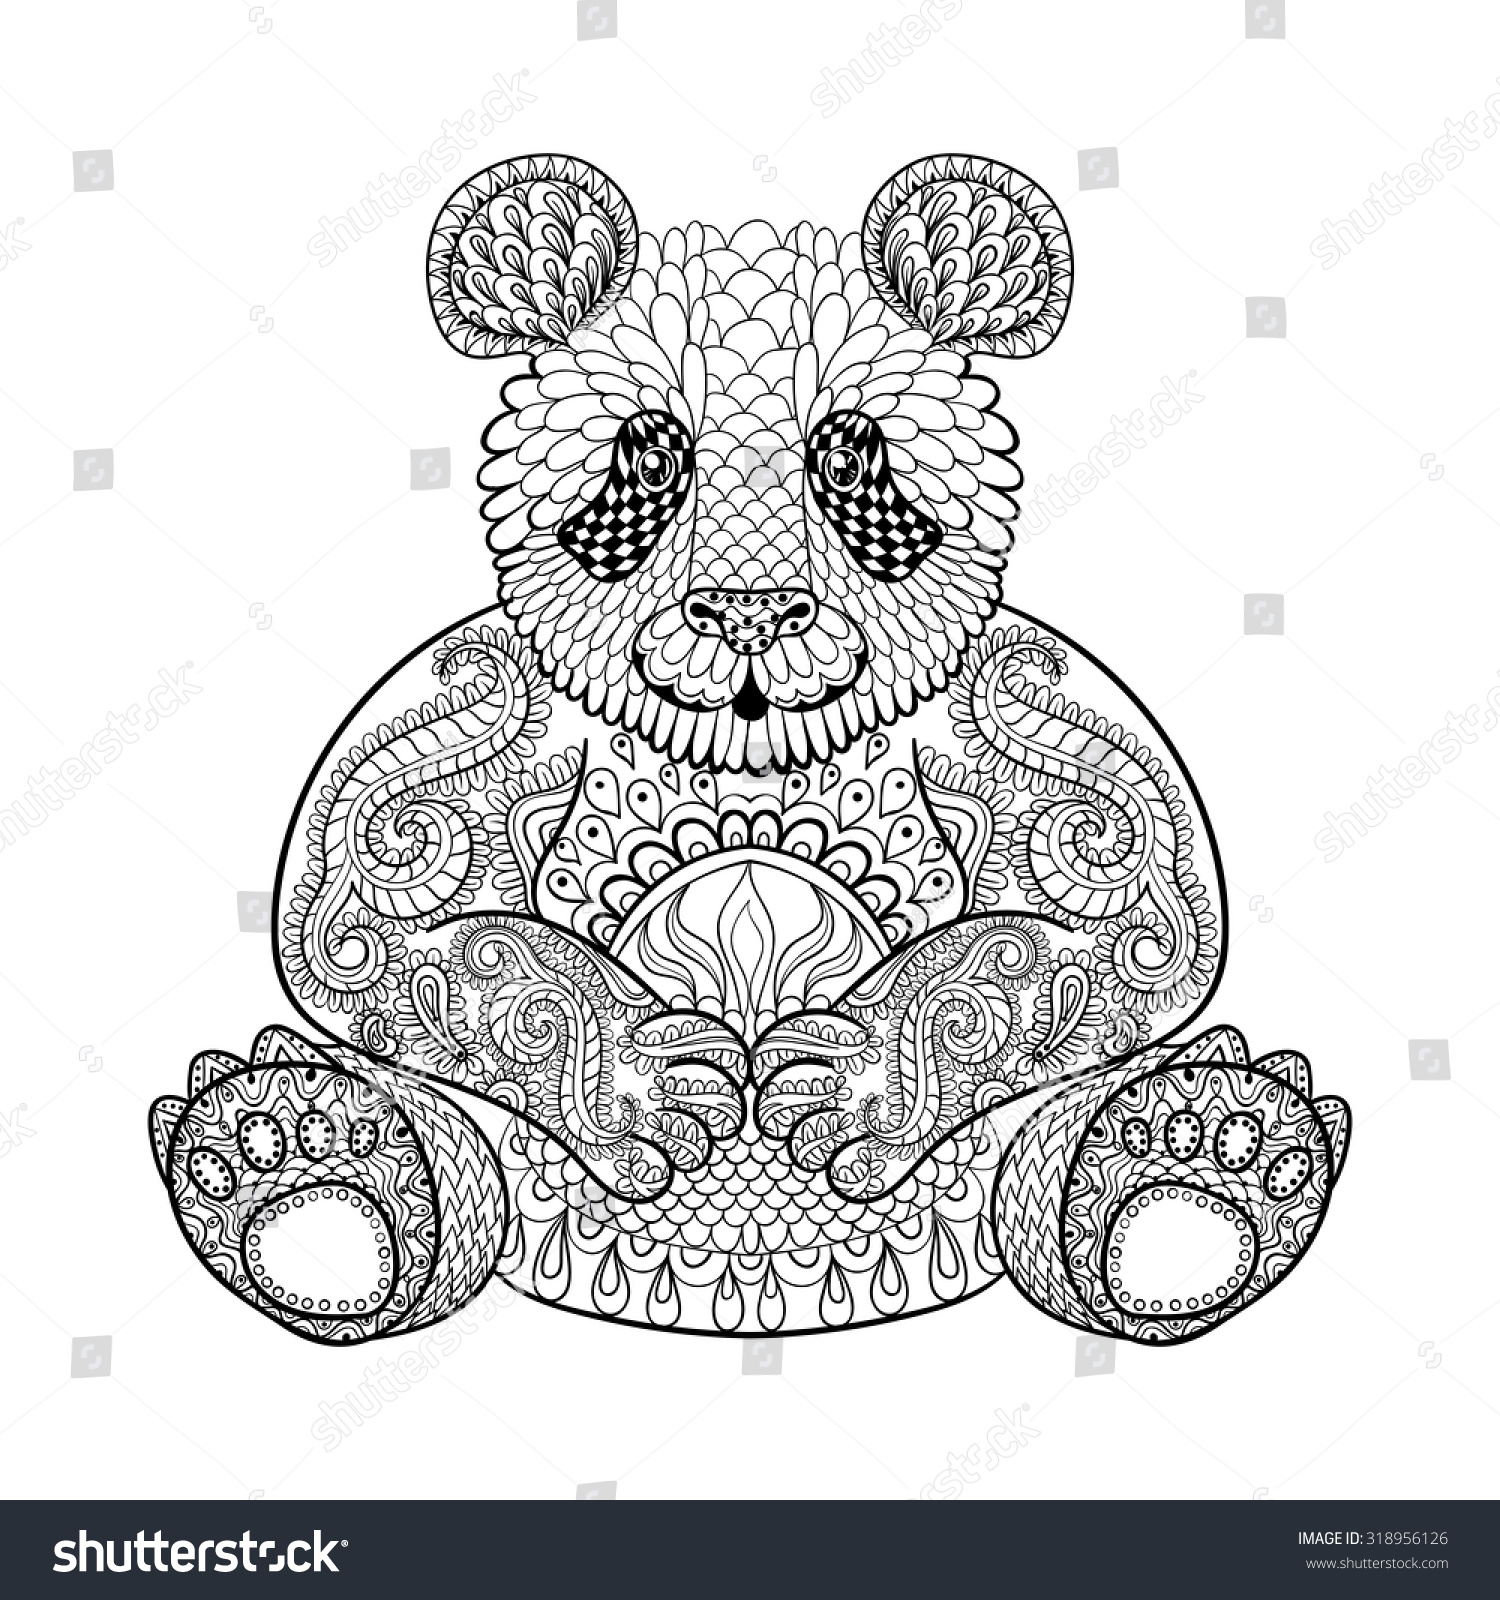 tribal animal coloring pages - photo#17